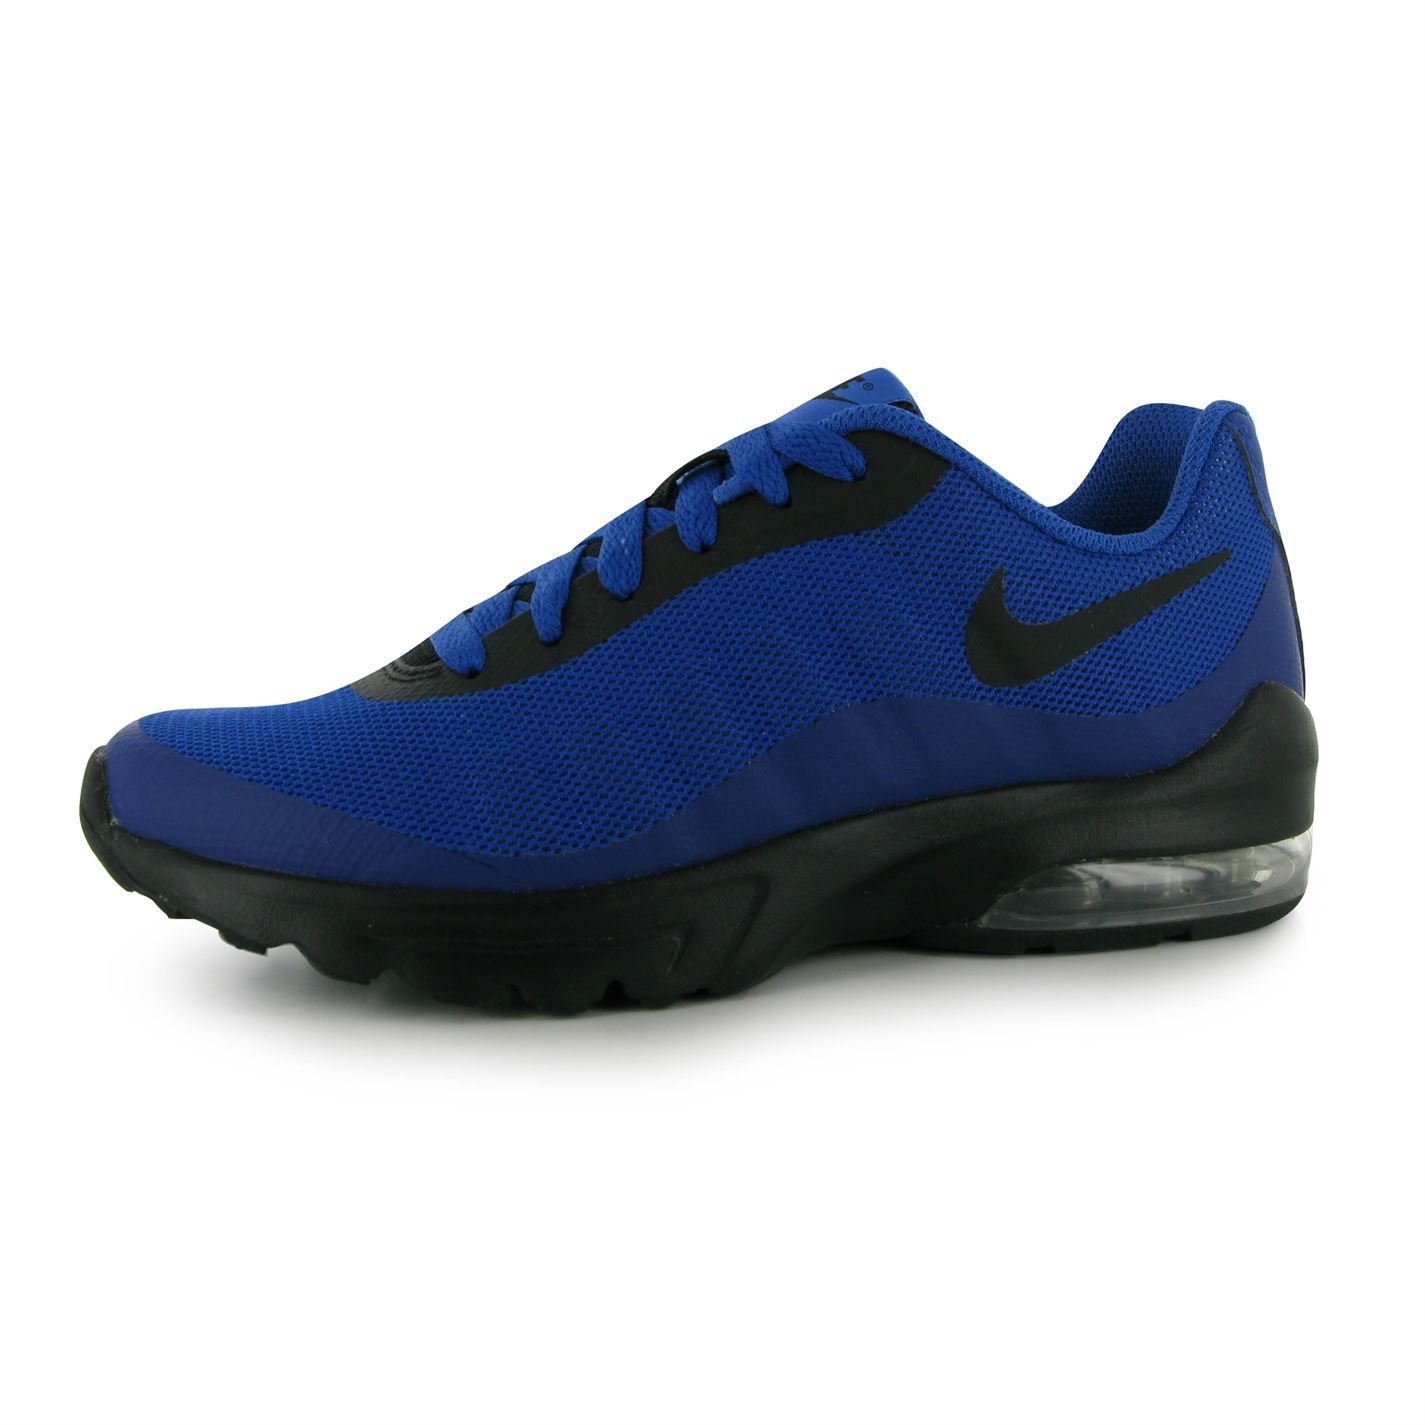 0866d32830 Nike Air Max Invigor Trainers Junior Boys in 2019 | Nike | Kids nike ...